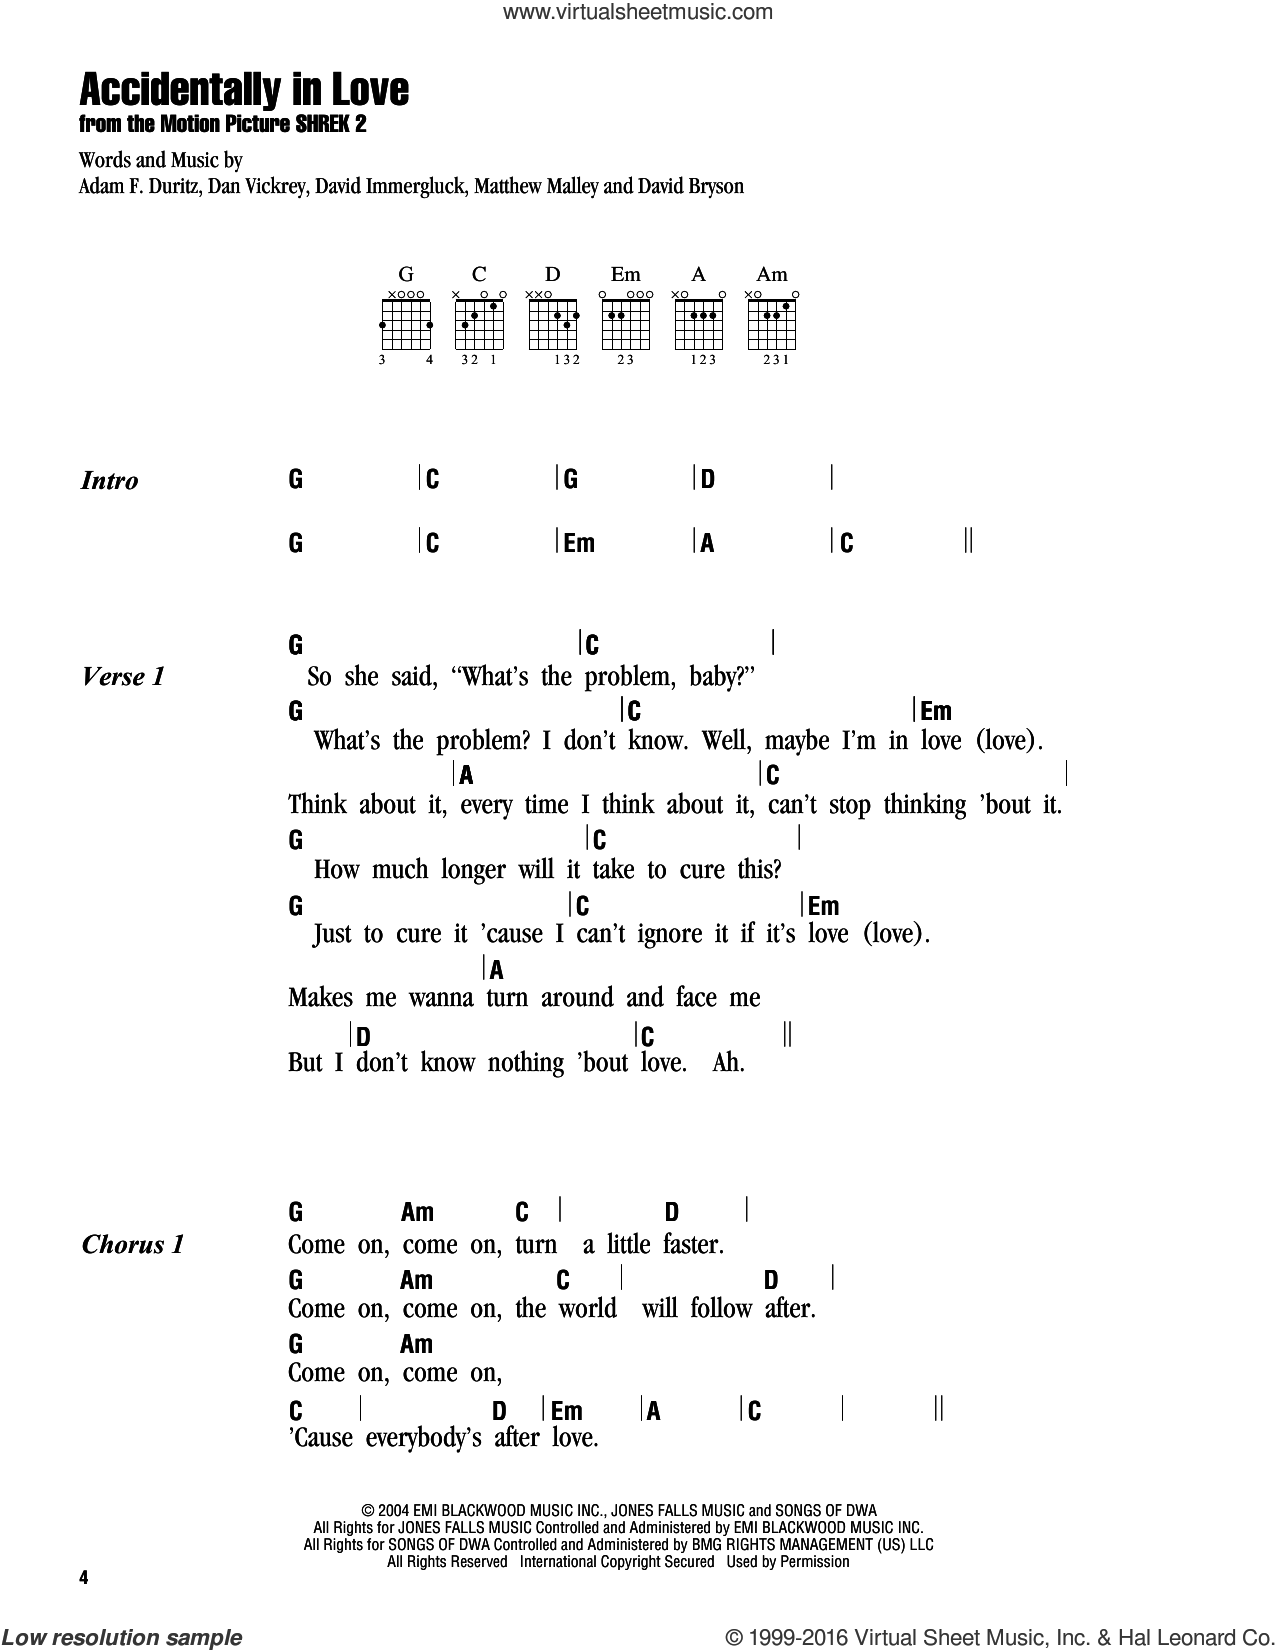 Accidentally In Love sheet music for guitar (chords) by Counting Crows, Adam Duritz, Dan Vickrey, David Bryson, David Immergluck and Matthew Malley, intermediate